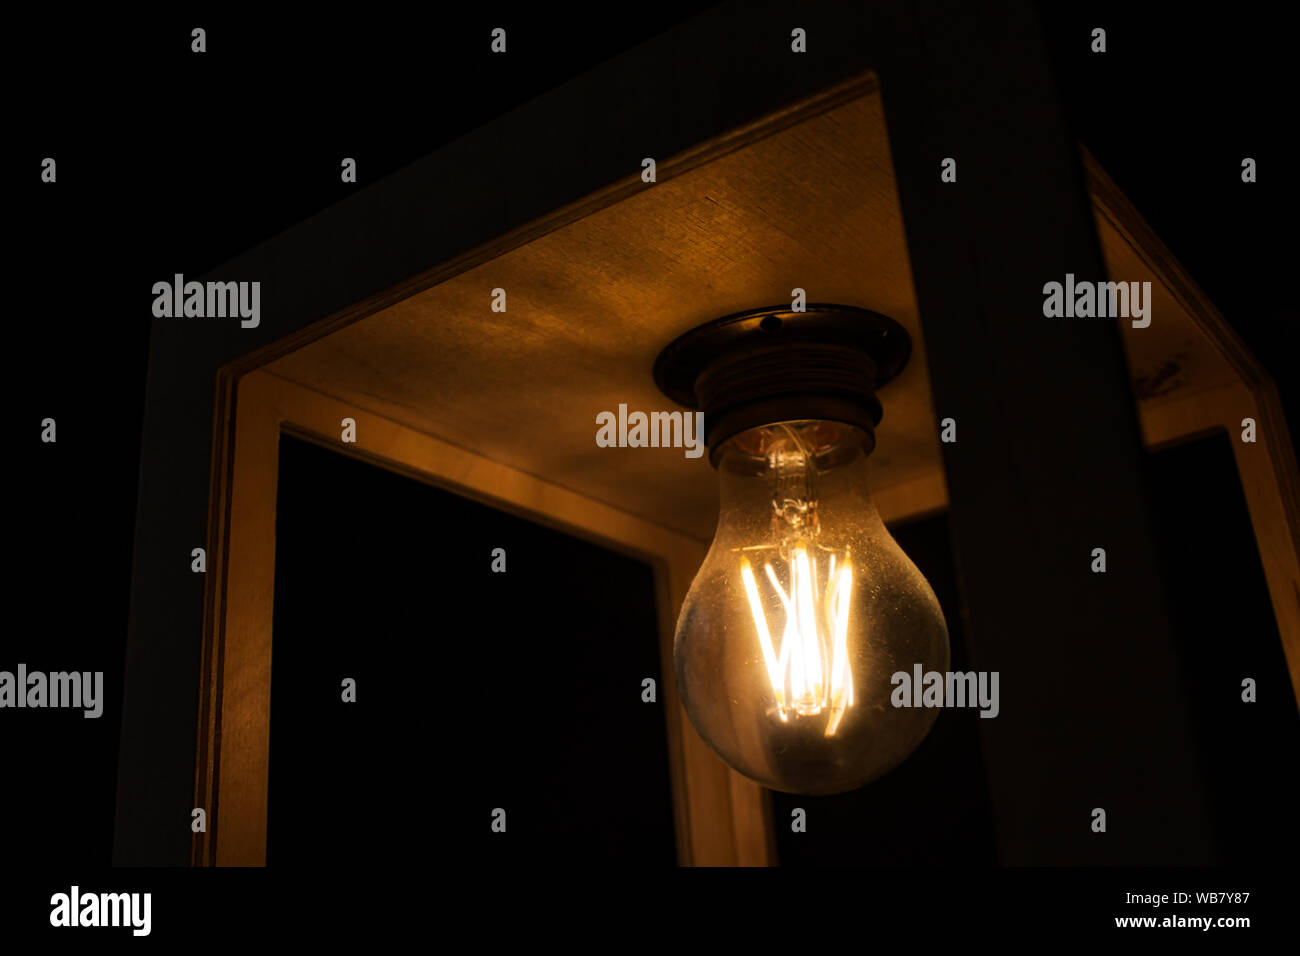 Close-up of warm yellow glowing light bulb encased in a wooden box against a black background Stock Photo